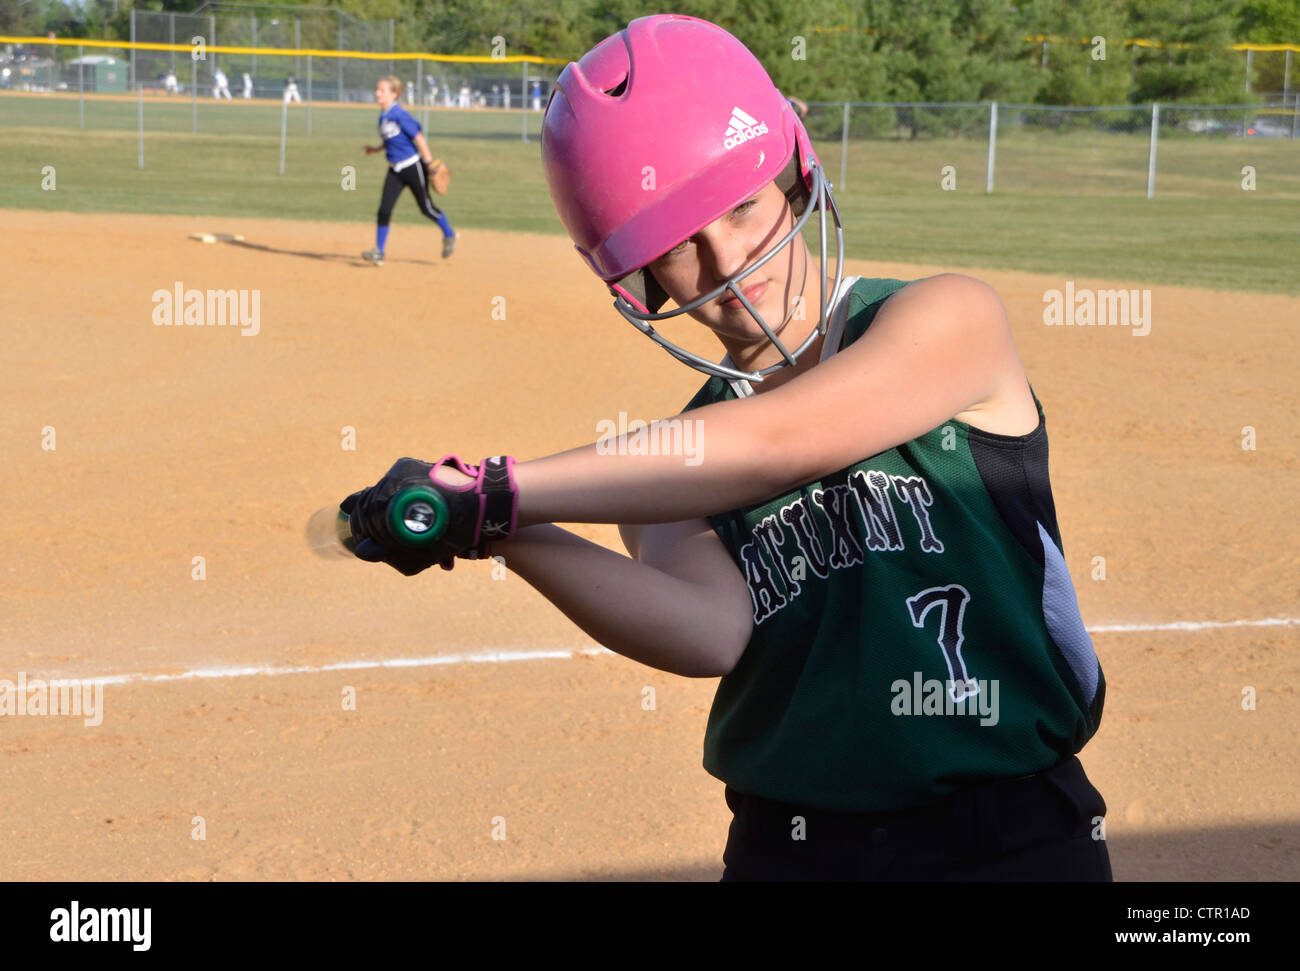 A female softball batter takes some warmup swings before she comes up to bat - Stock Image